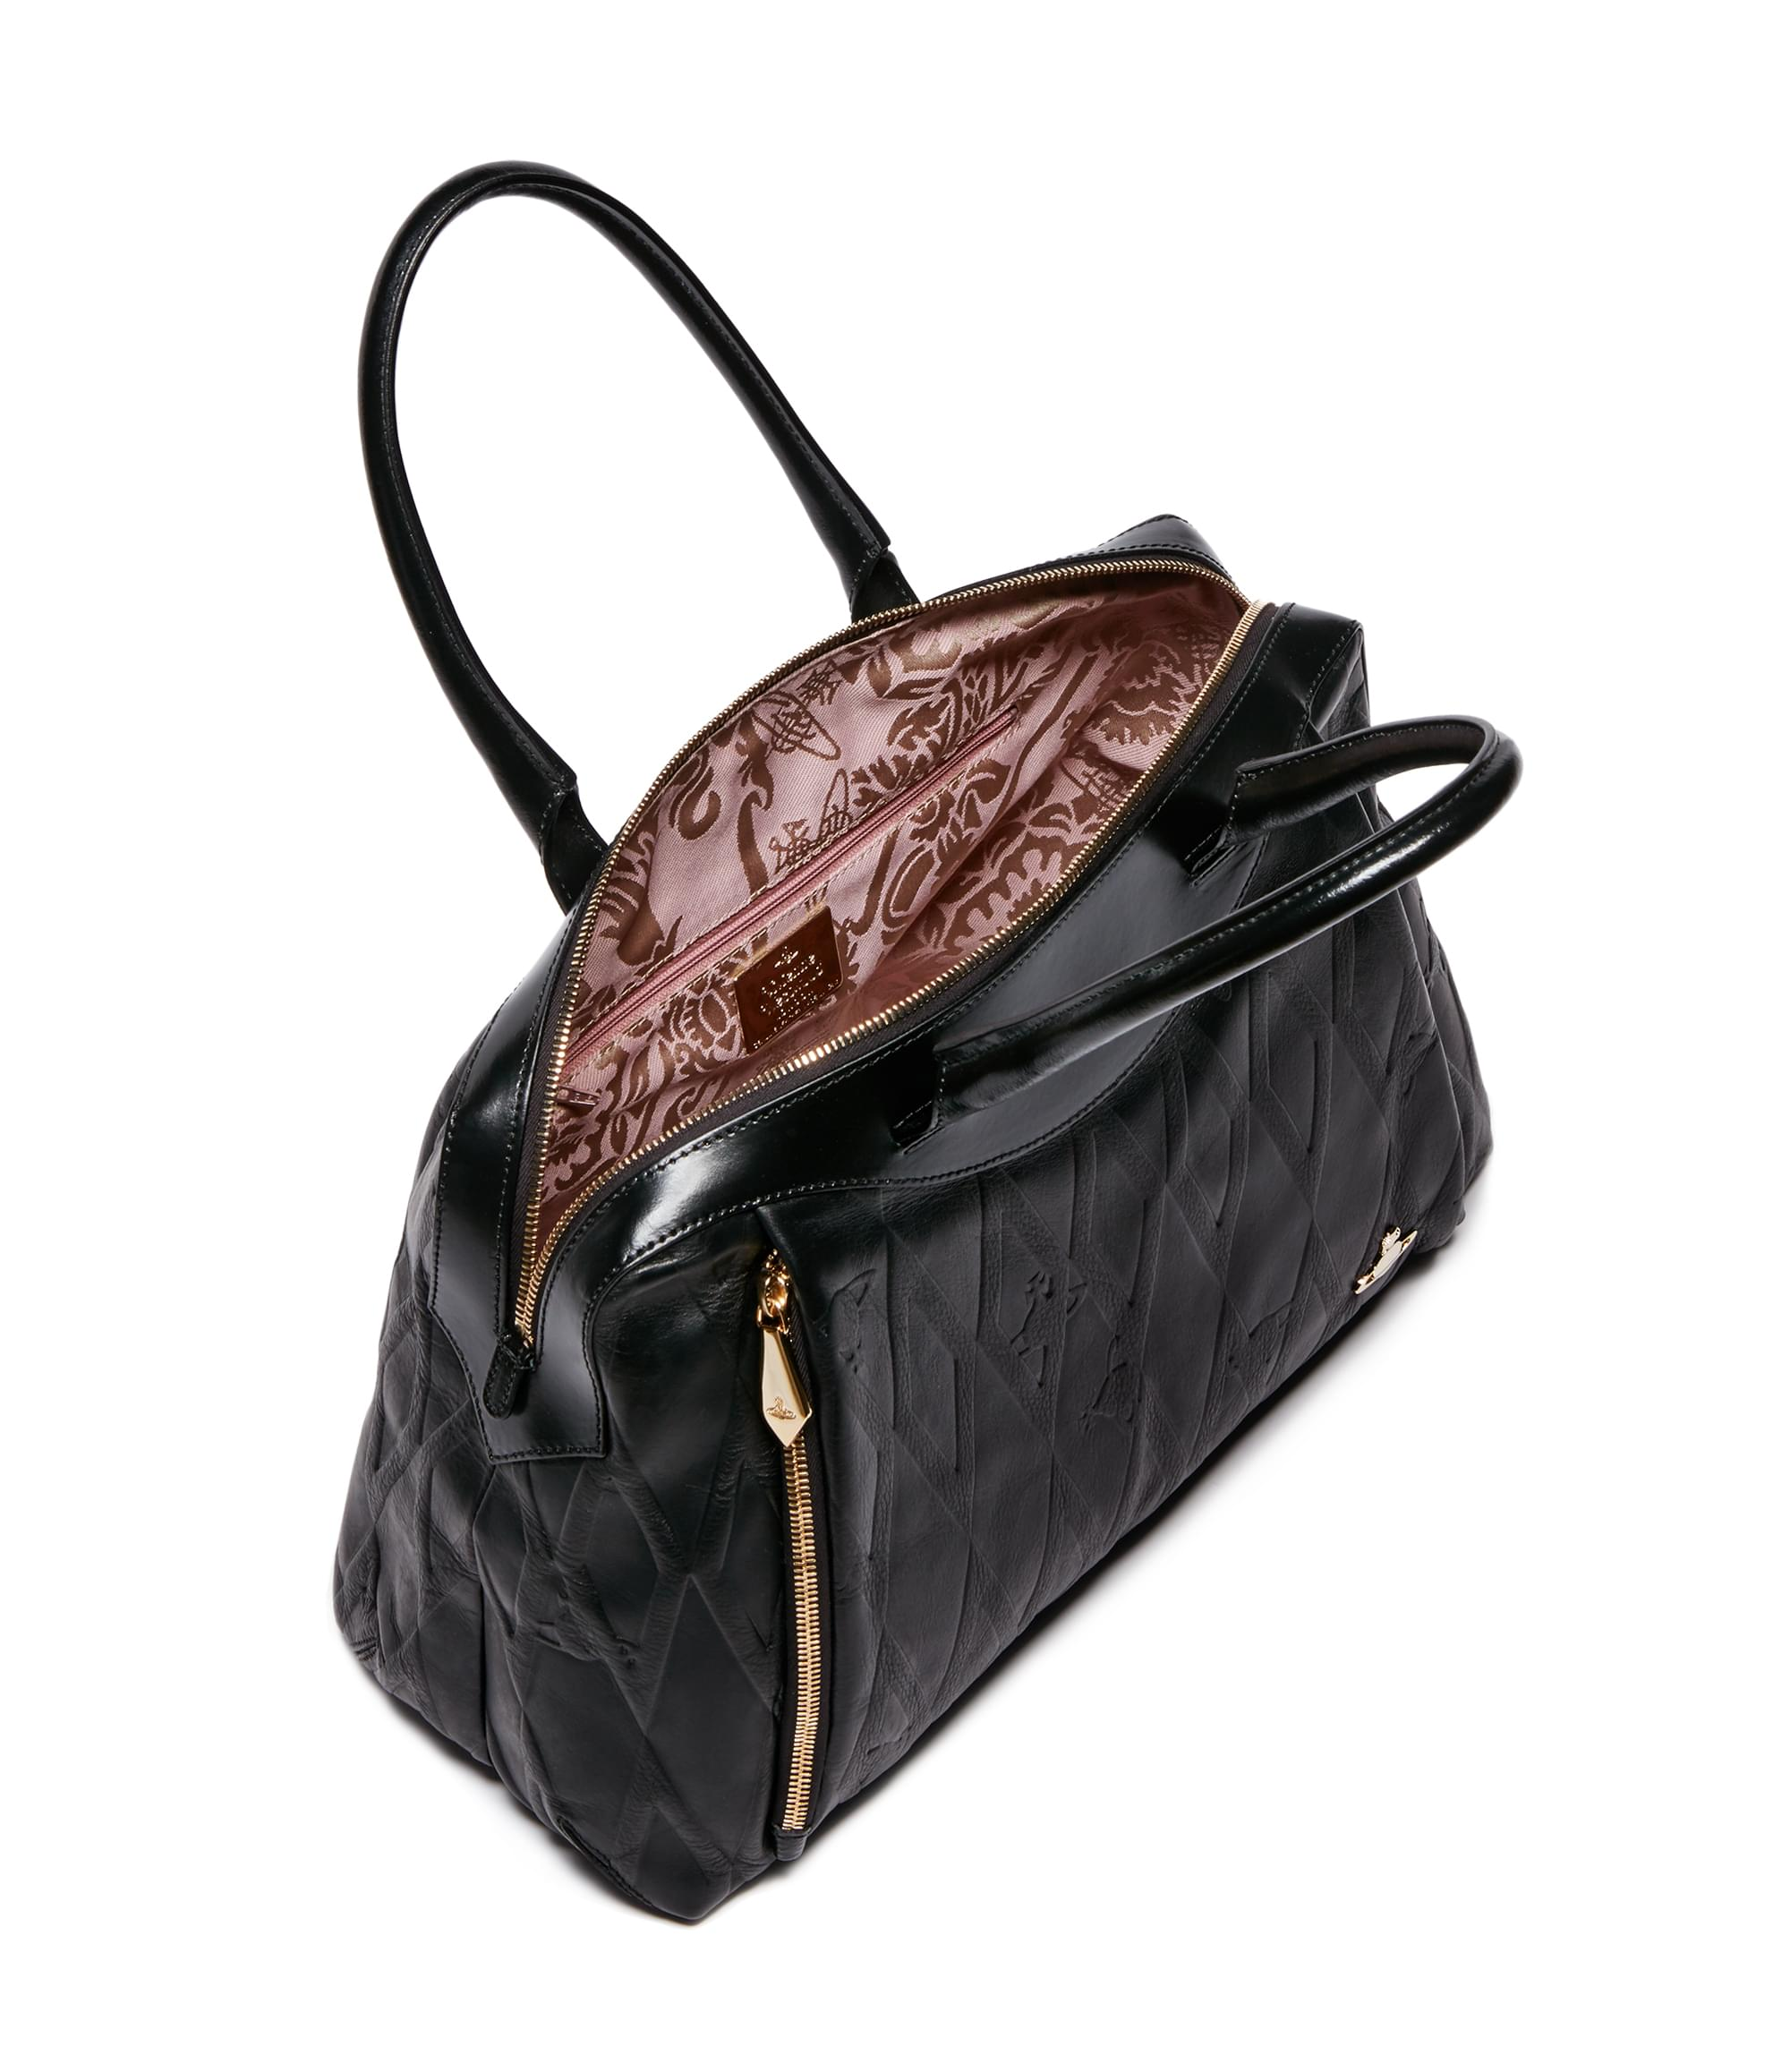 Vivienne Westwood Diamond Orb Bag 7114 Black